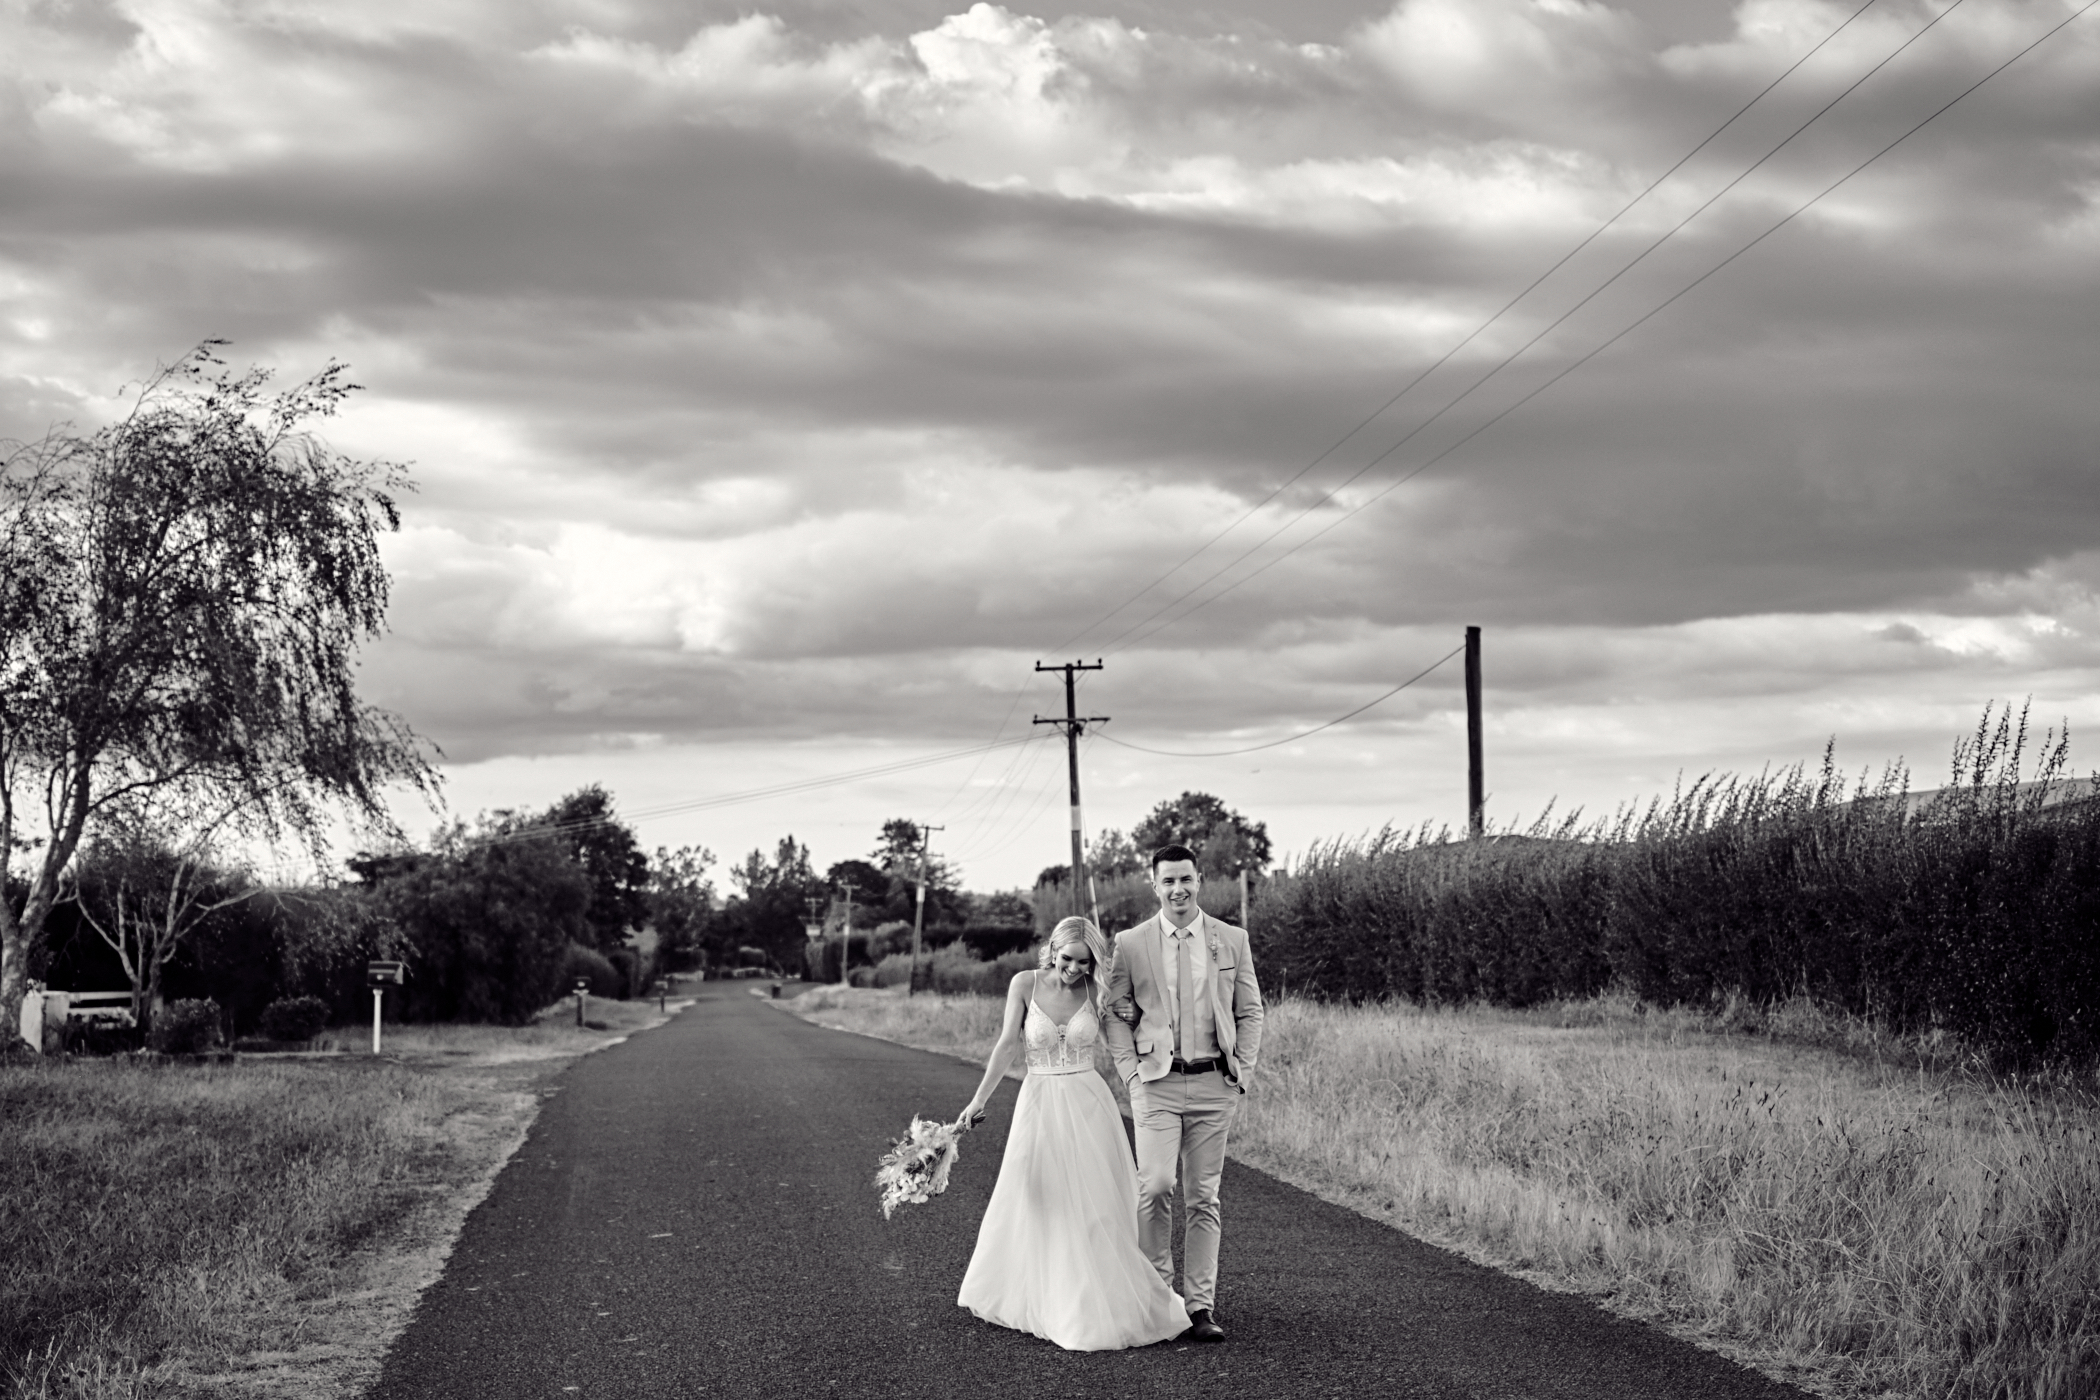 Karaka wedding photographer